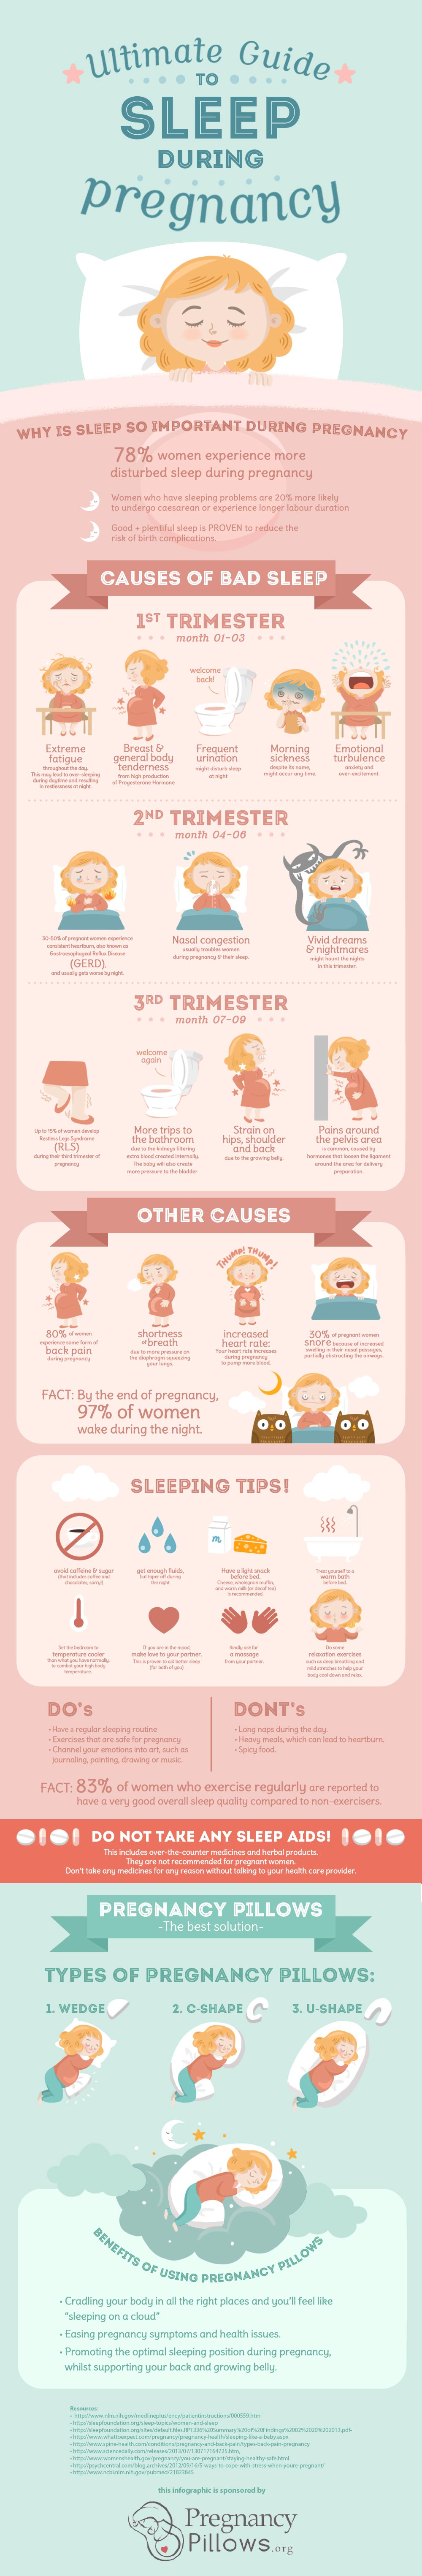 How to Sleep Like a Baby: Guide to Restful Sleep During Pregnancy - Infographic